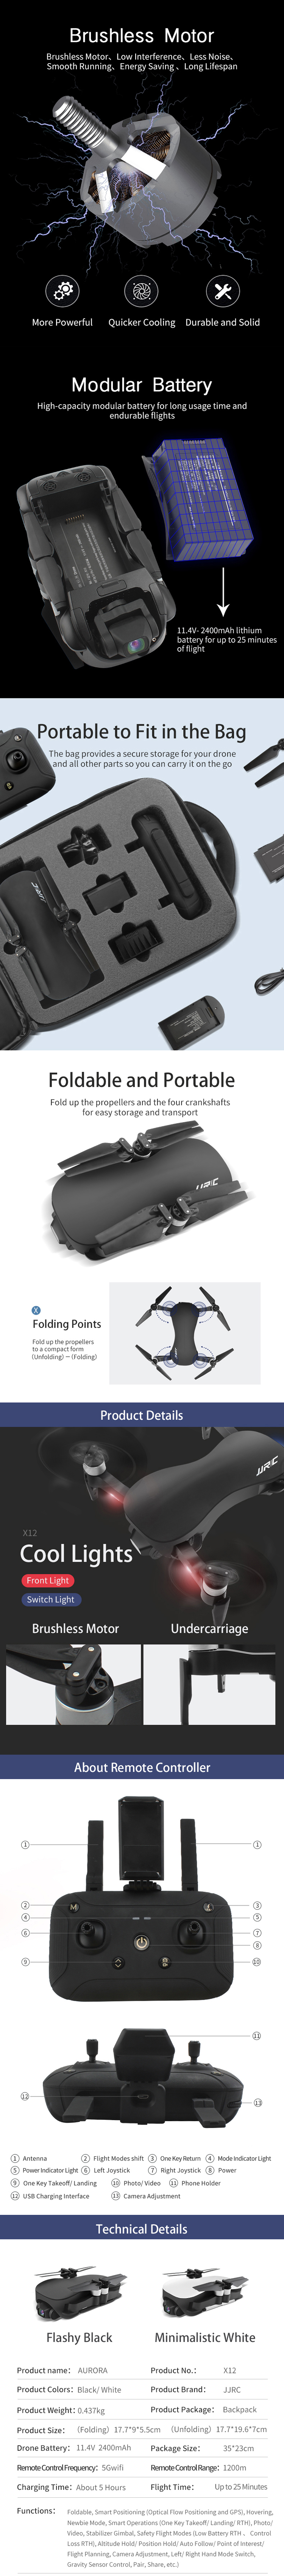 Professional JJRC X12  Brushless Dual GPS 3-Axis Gimbal 4k Camera With 1.2KM Control Distance and  25 Mins Flight